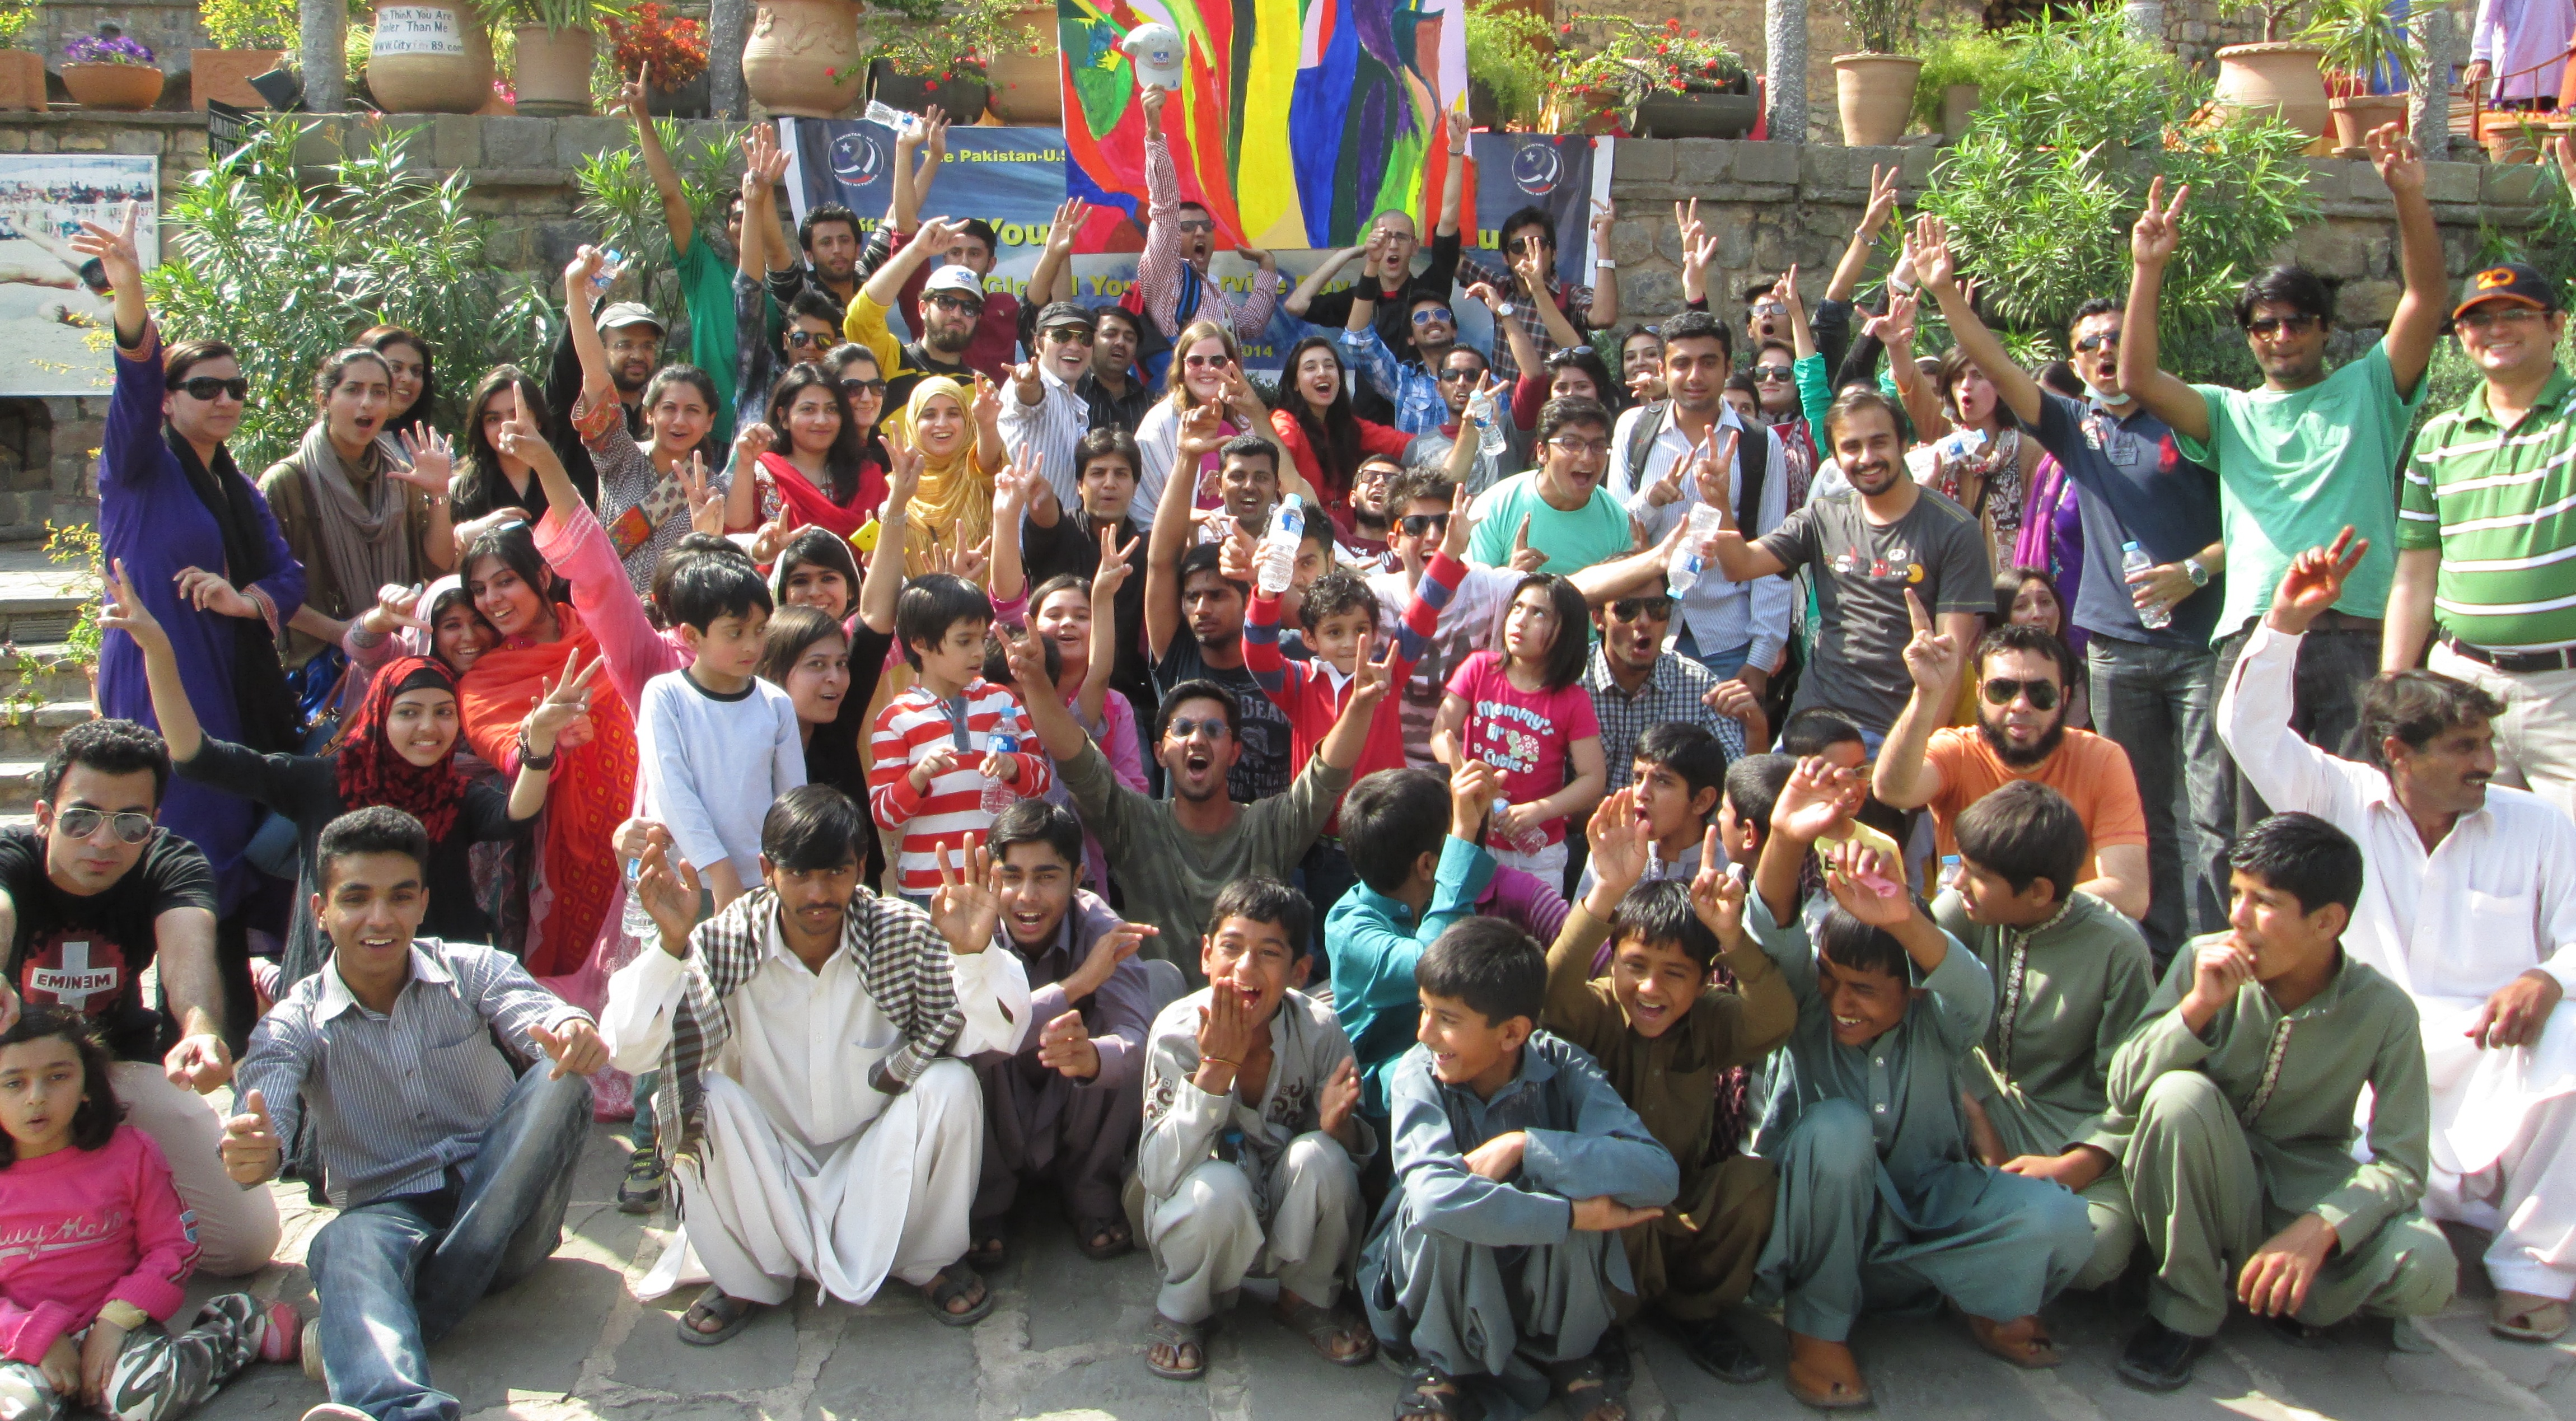 Alumni Lead Volunteerism Events Across Pakistan for Global Youth Service Day